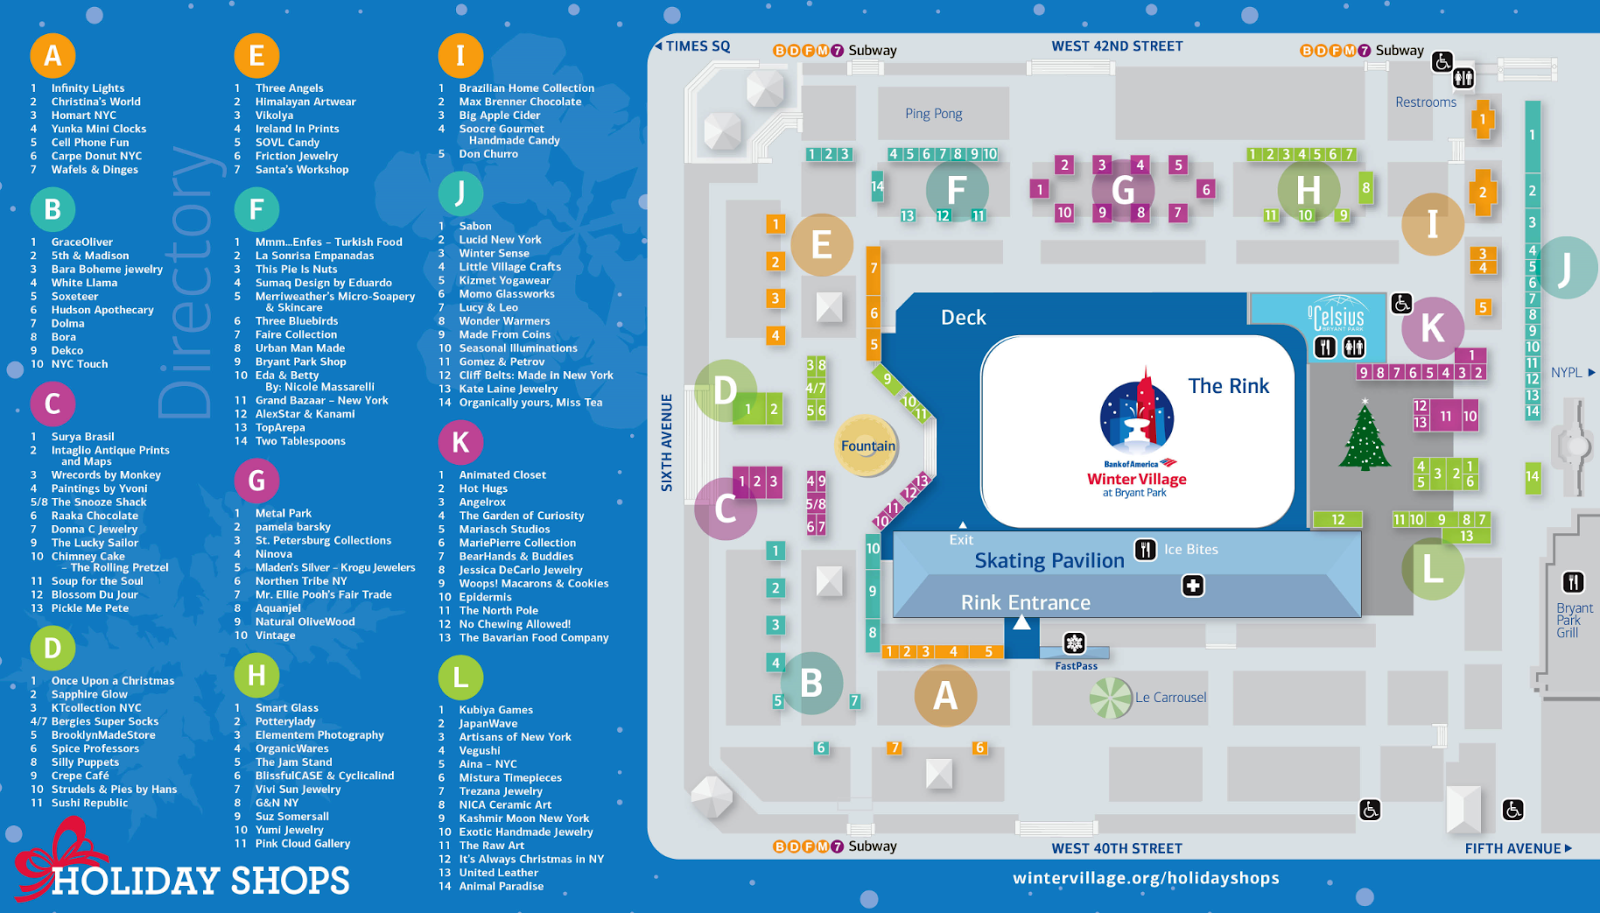 Bryant Park Blog Winter Village 2014 Holiday Shops Map And Directory Released